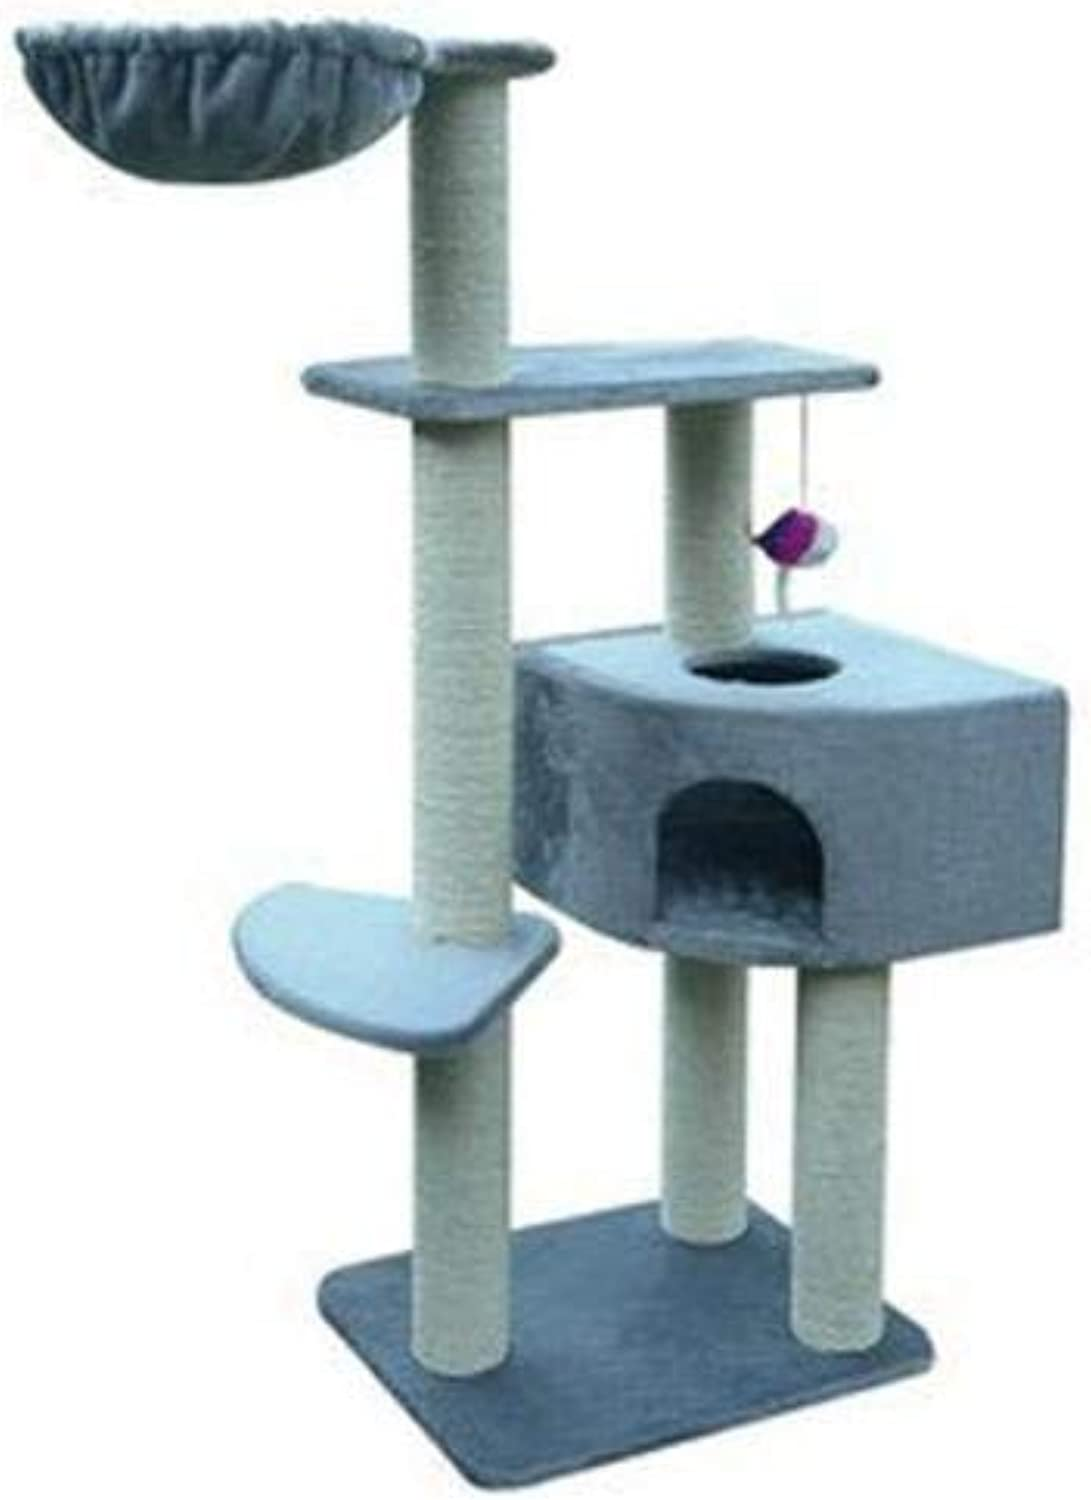 Axiba Play Towers Trees for Cats Cat climb frame cat nest cat Tree Cat Scratch Plate cat litter cat Tree cat toy cat Jumping